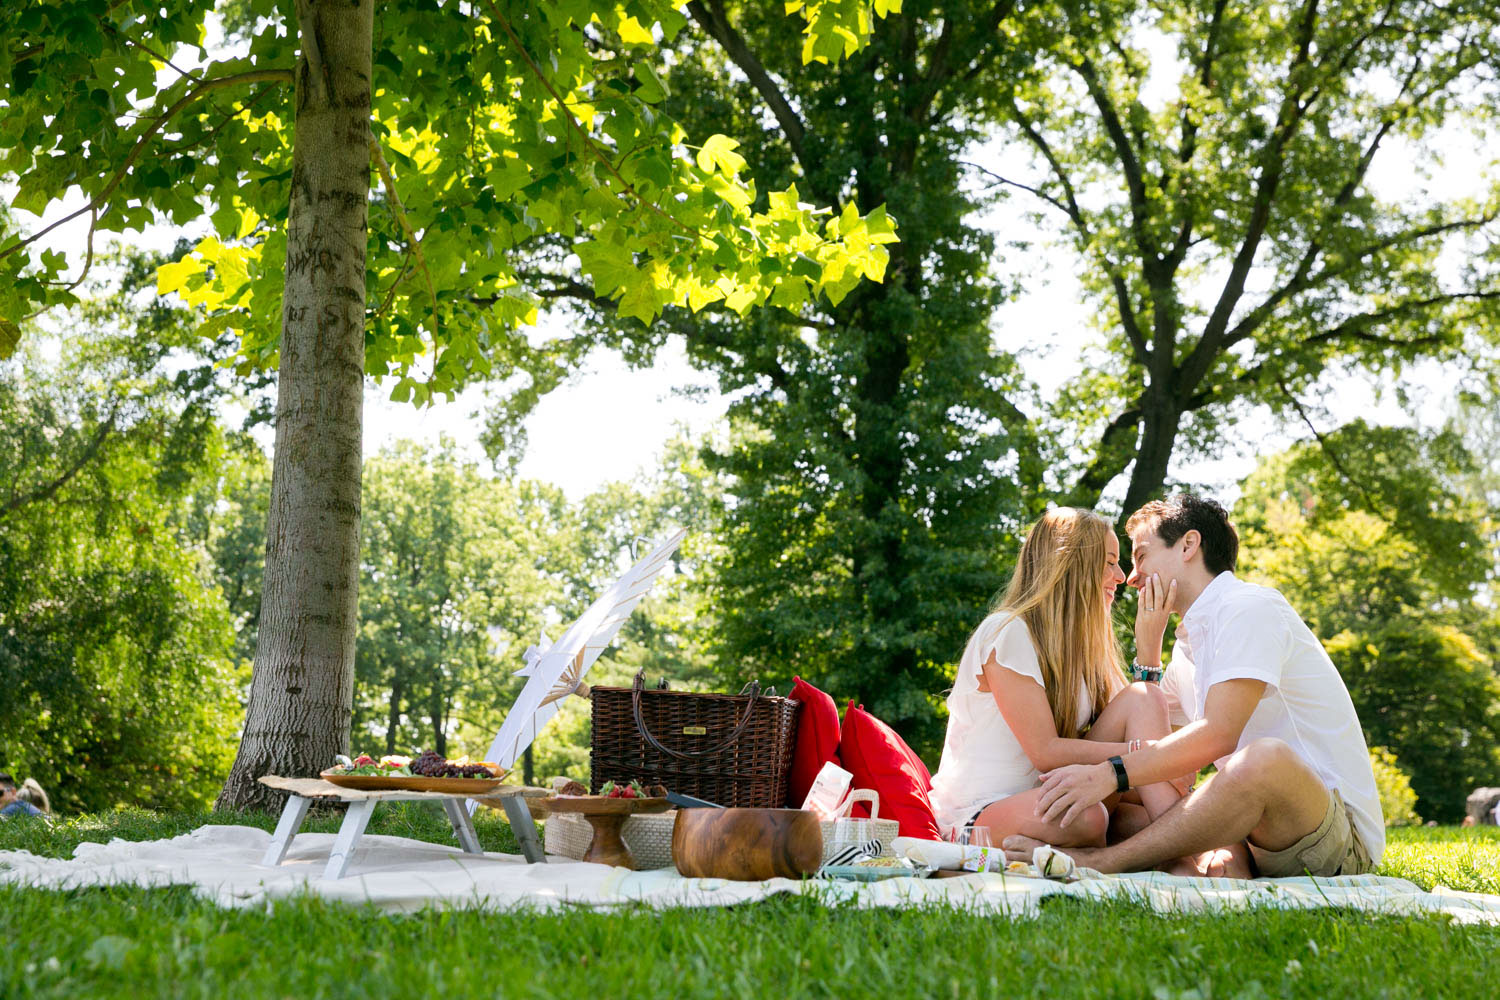 A romantic picnic in Central Park on a perfect day in August